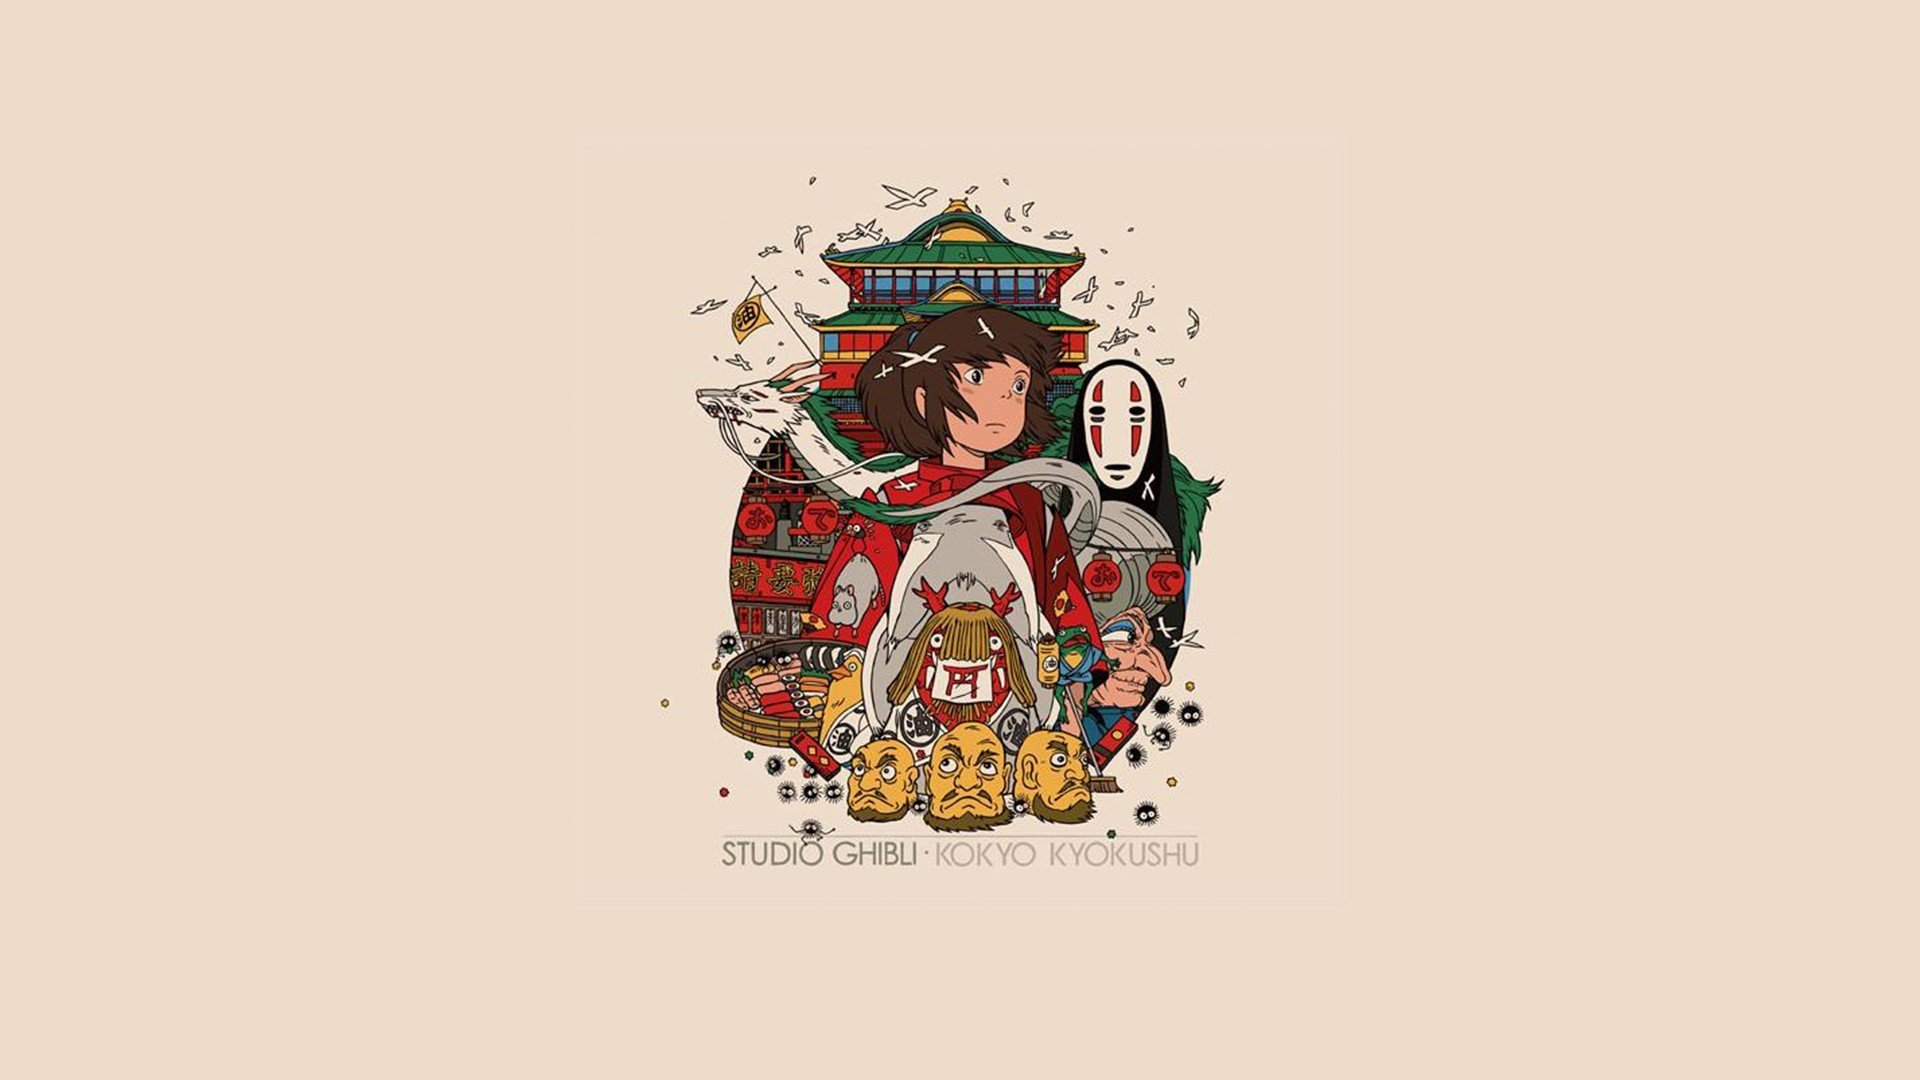 Chihiro Spirited Away Hd Wallpapers Desktop And Mobile Images Photos